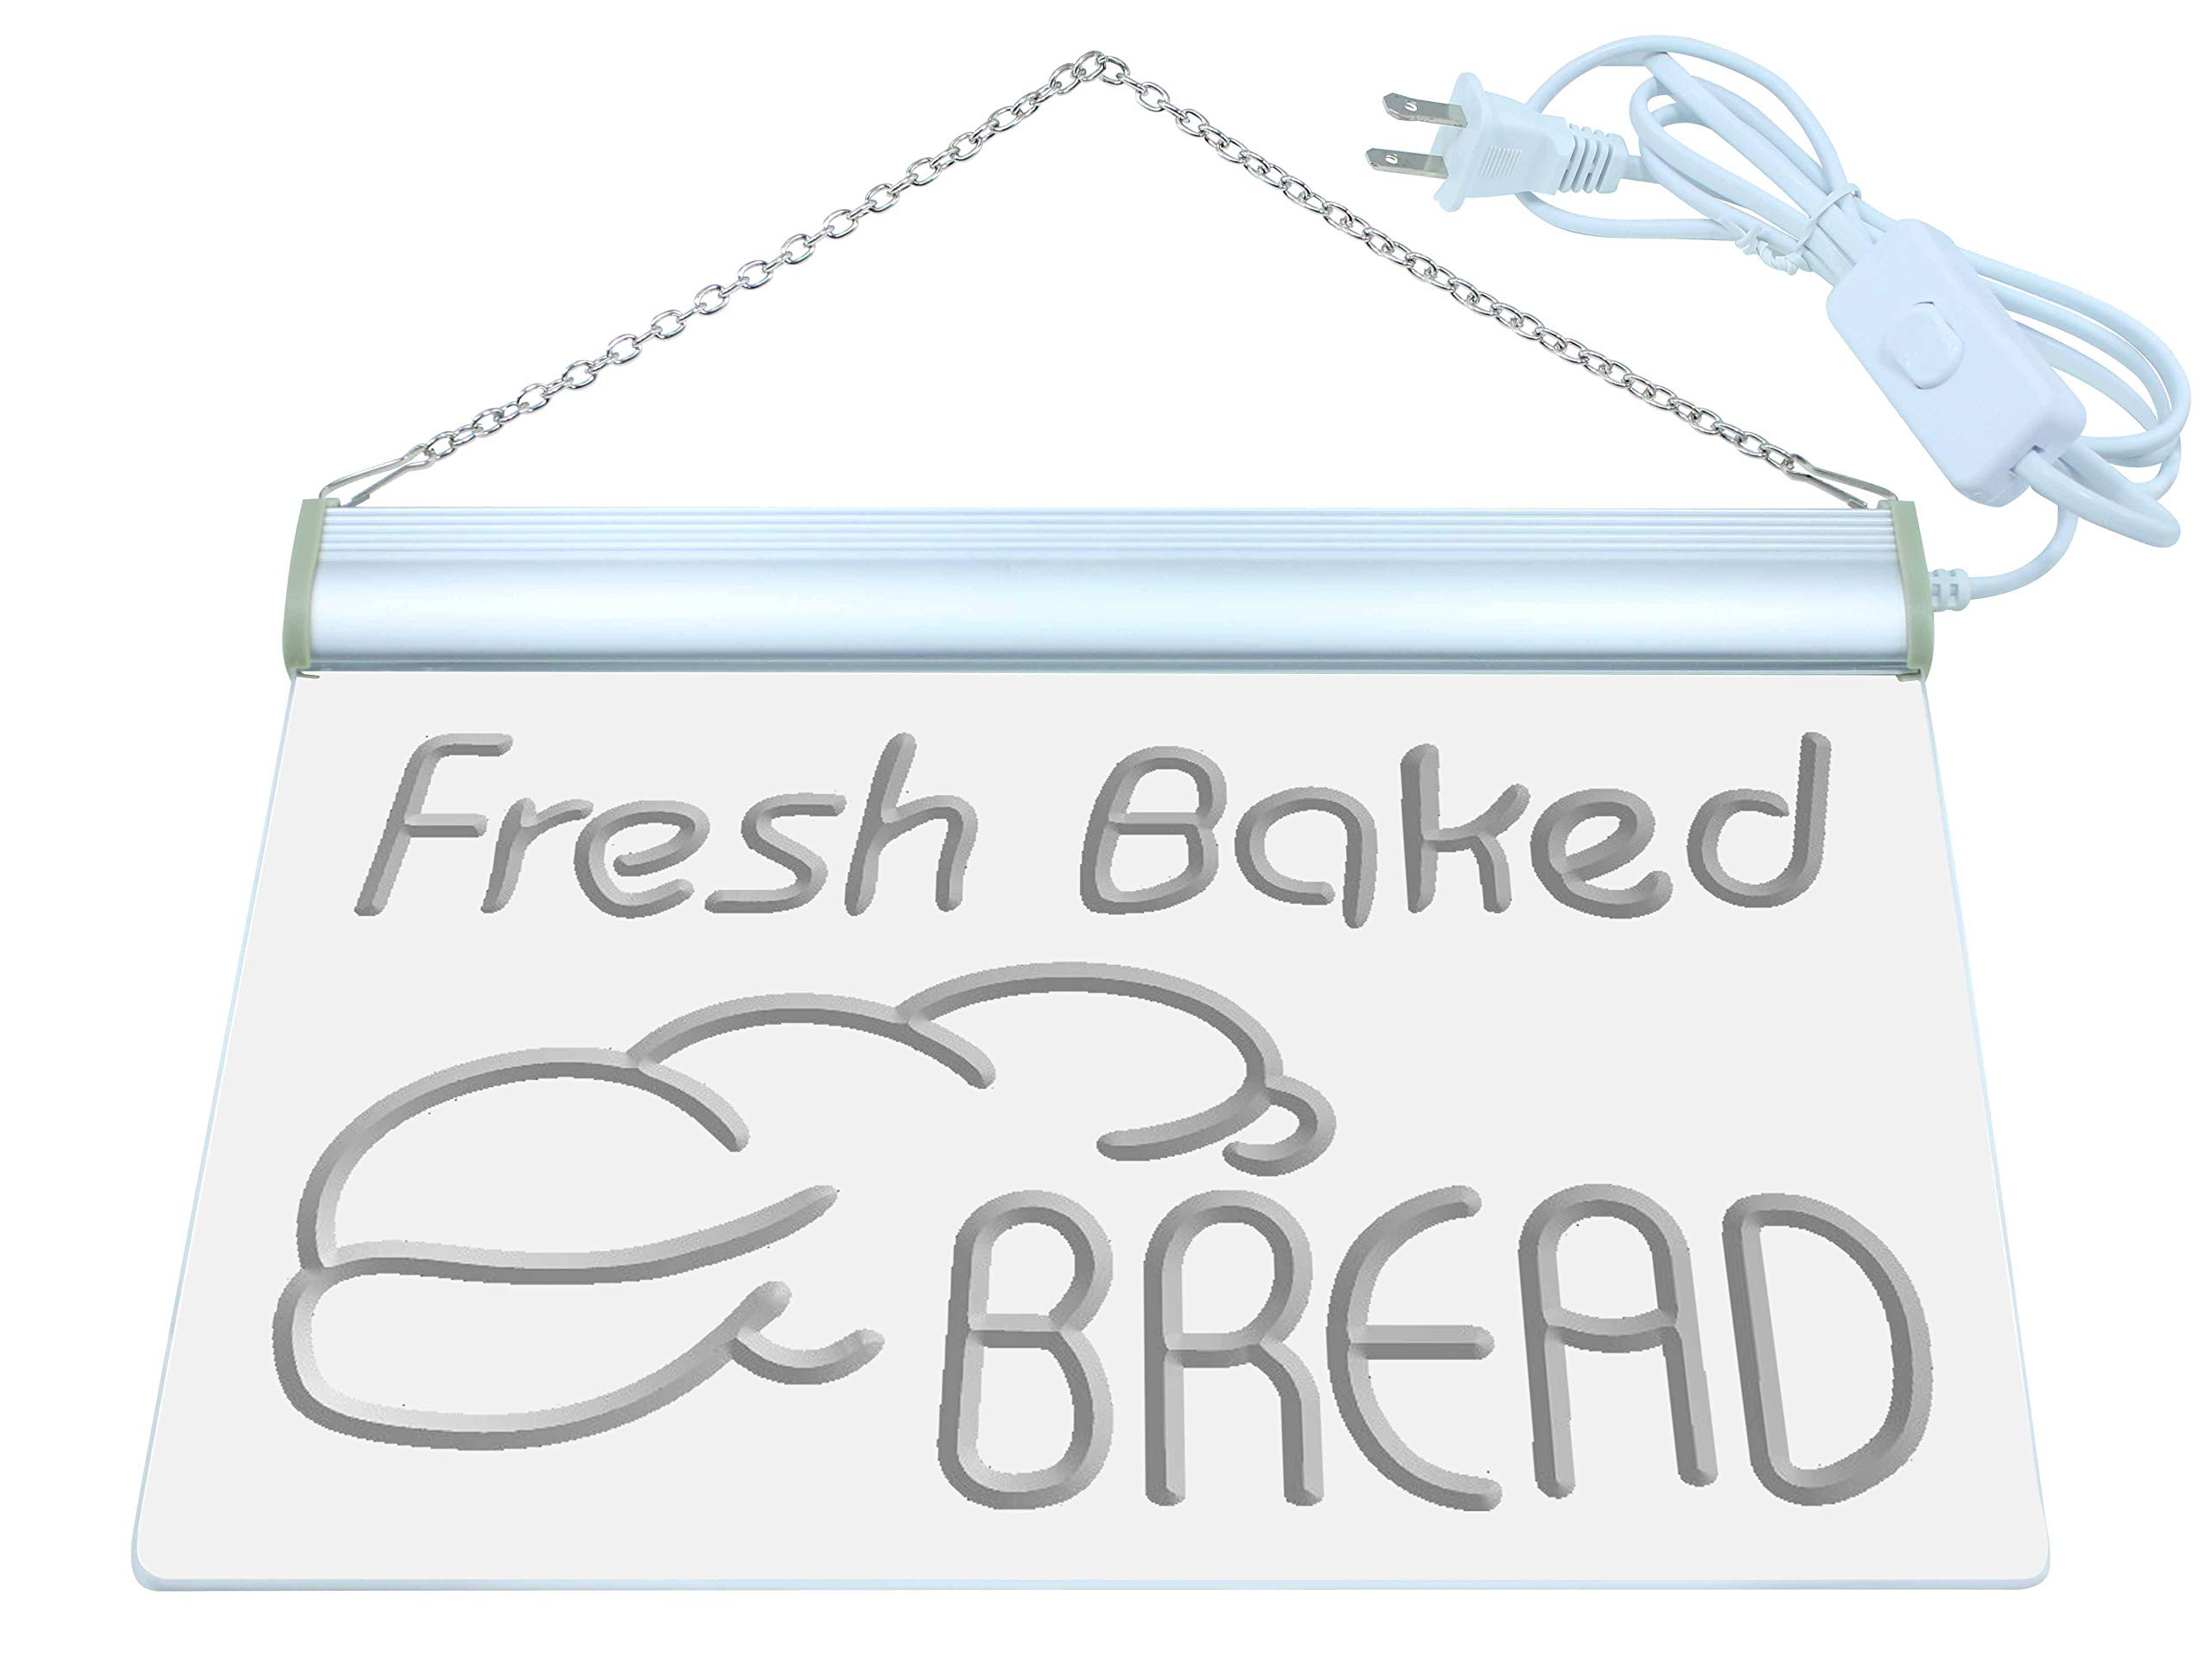 ADVPRO Multi Color i512-c Fresh Baked Bread Bakery Shop Neon LED Sign with Remote Control, 20 Colors, 19 Dynamic Modes, Speed & Brightness Adjustable, Demo Mode, Auto Save Function